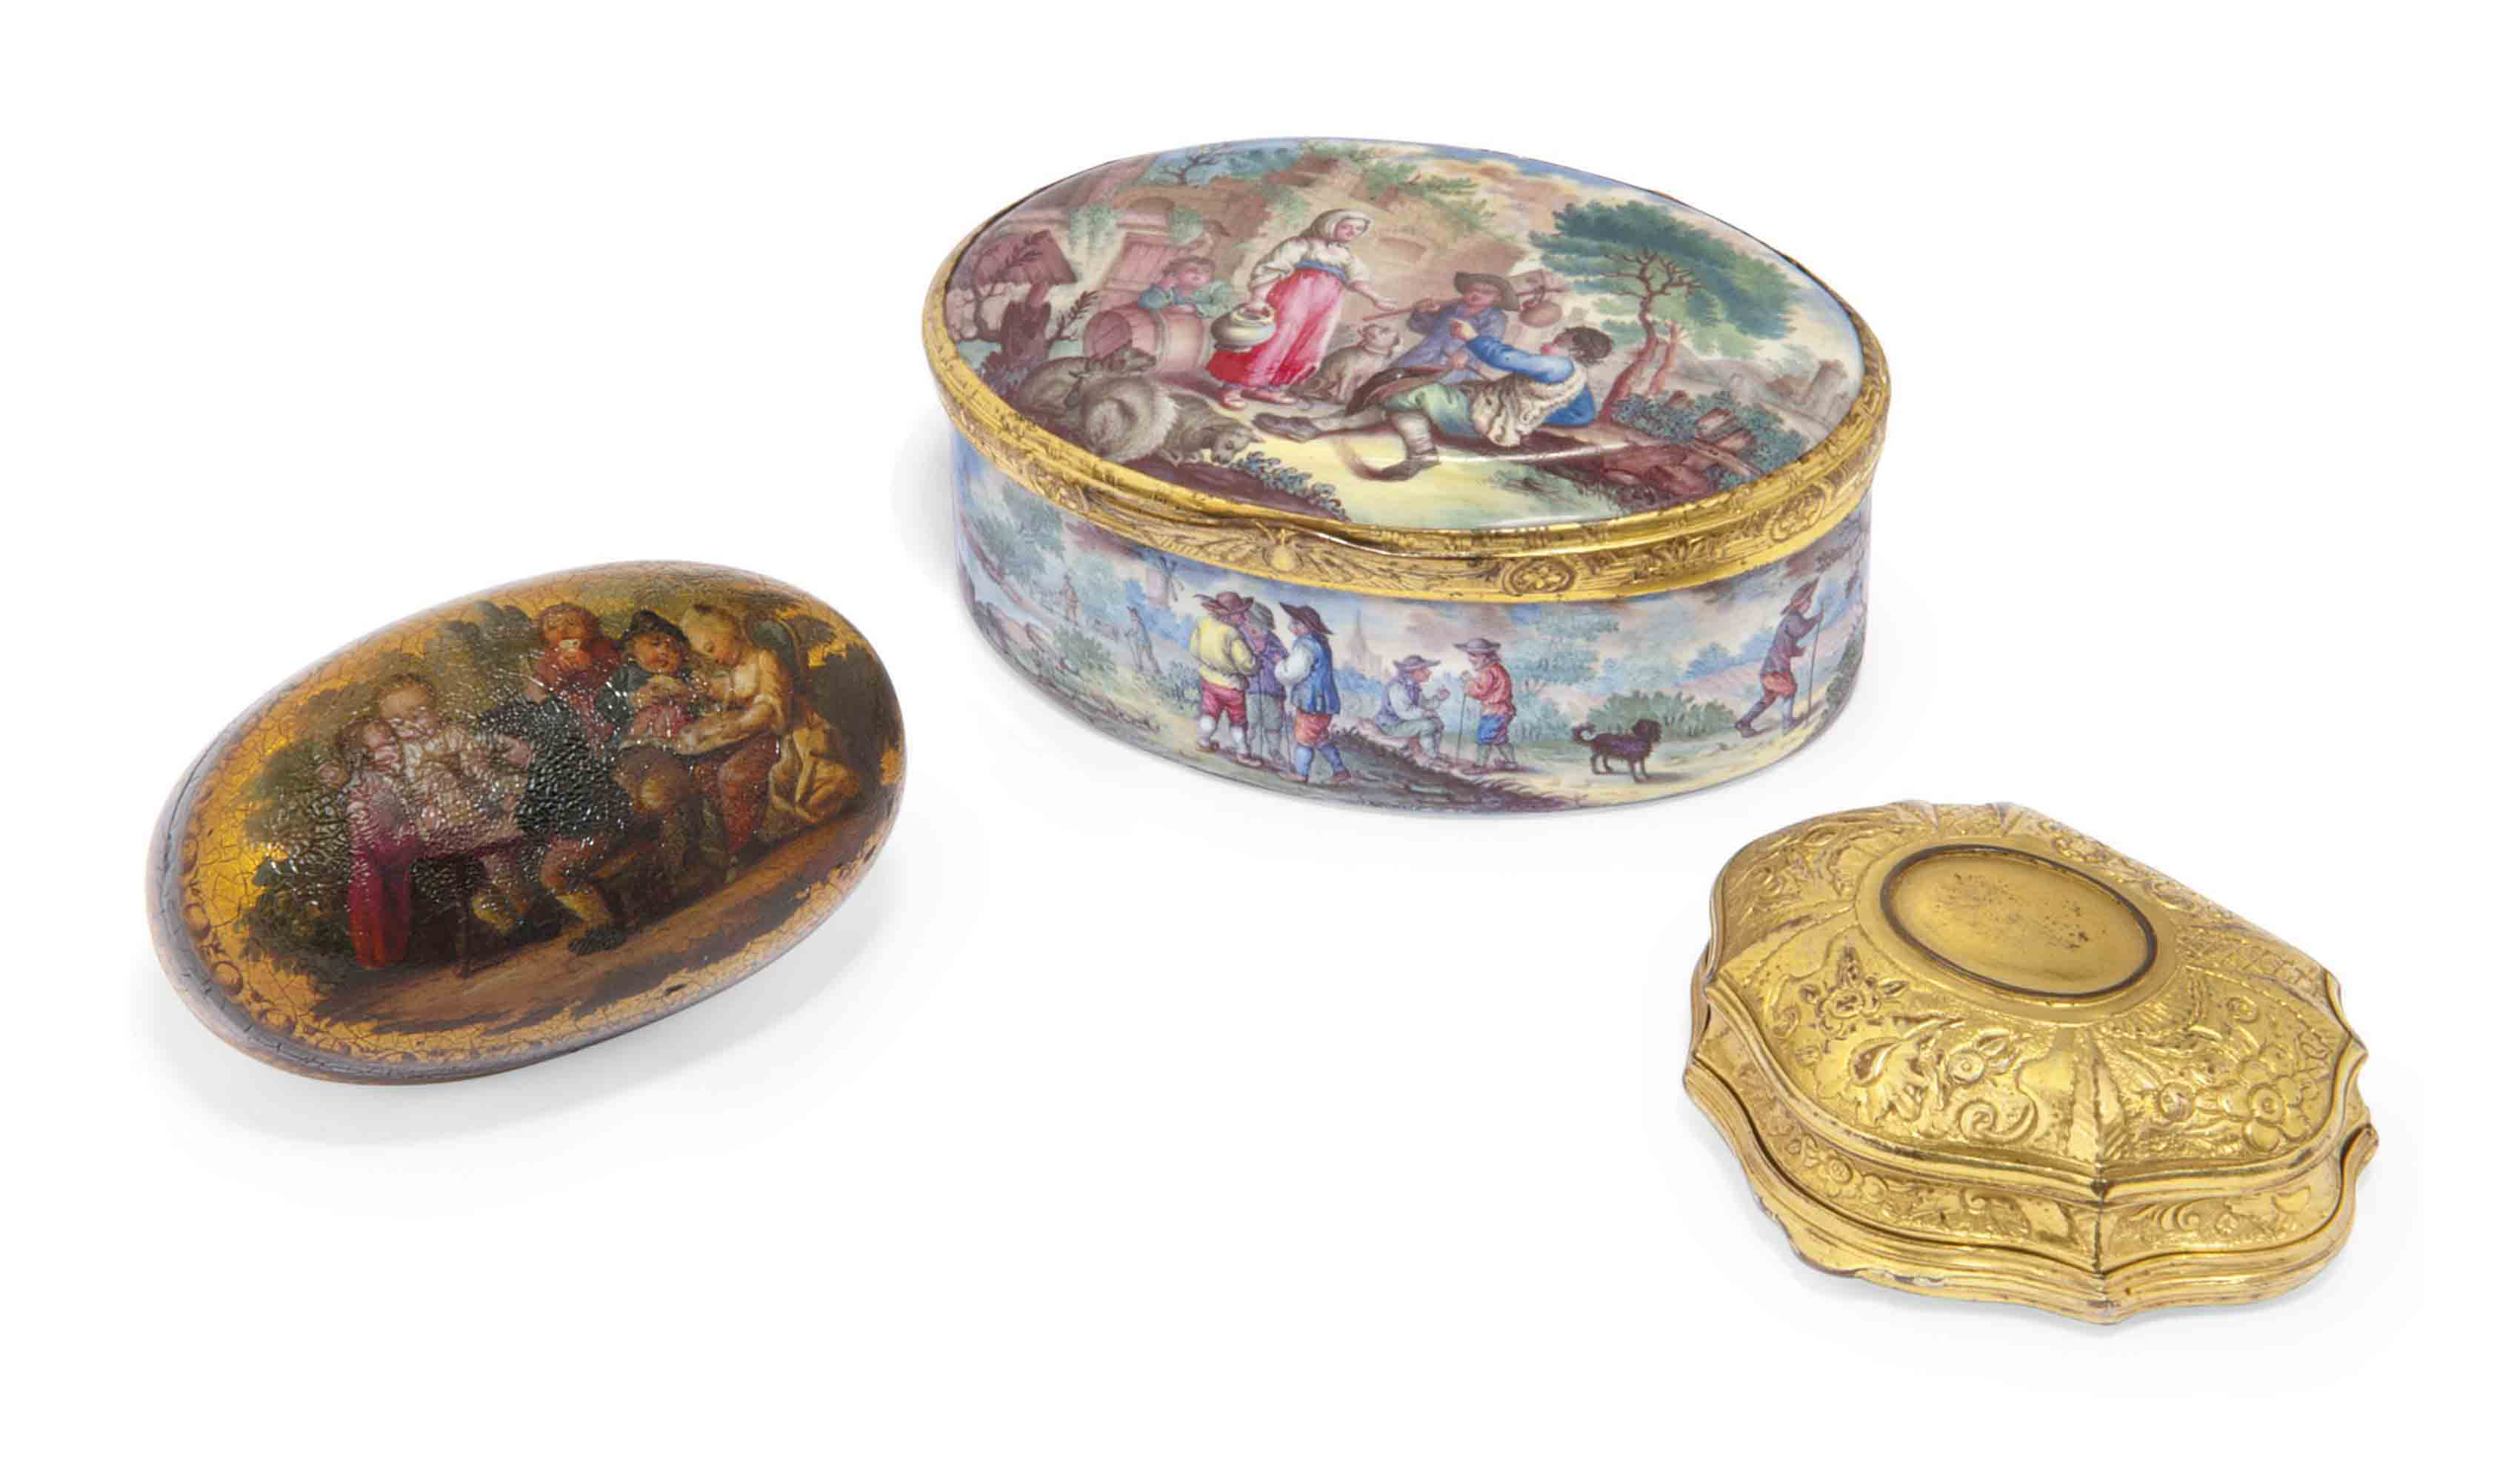 A CONTINENTAL ENAMEL AND GILT-